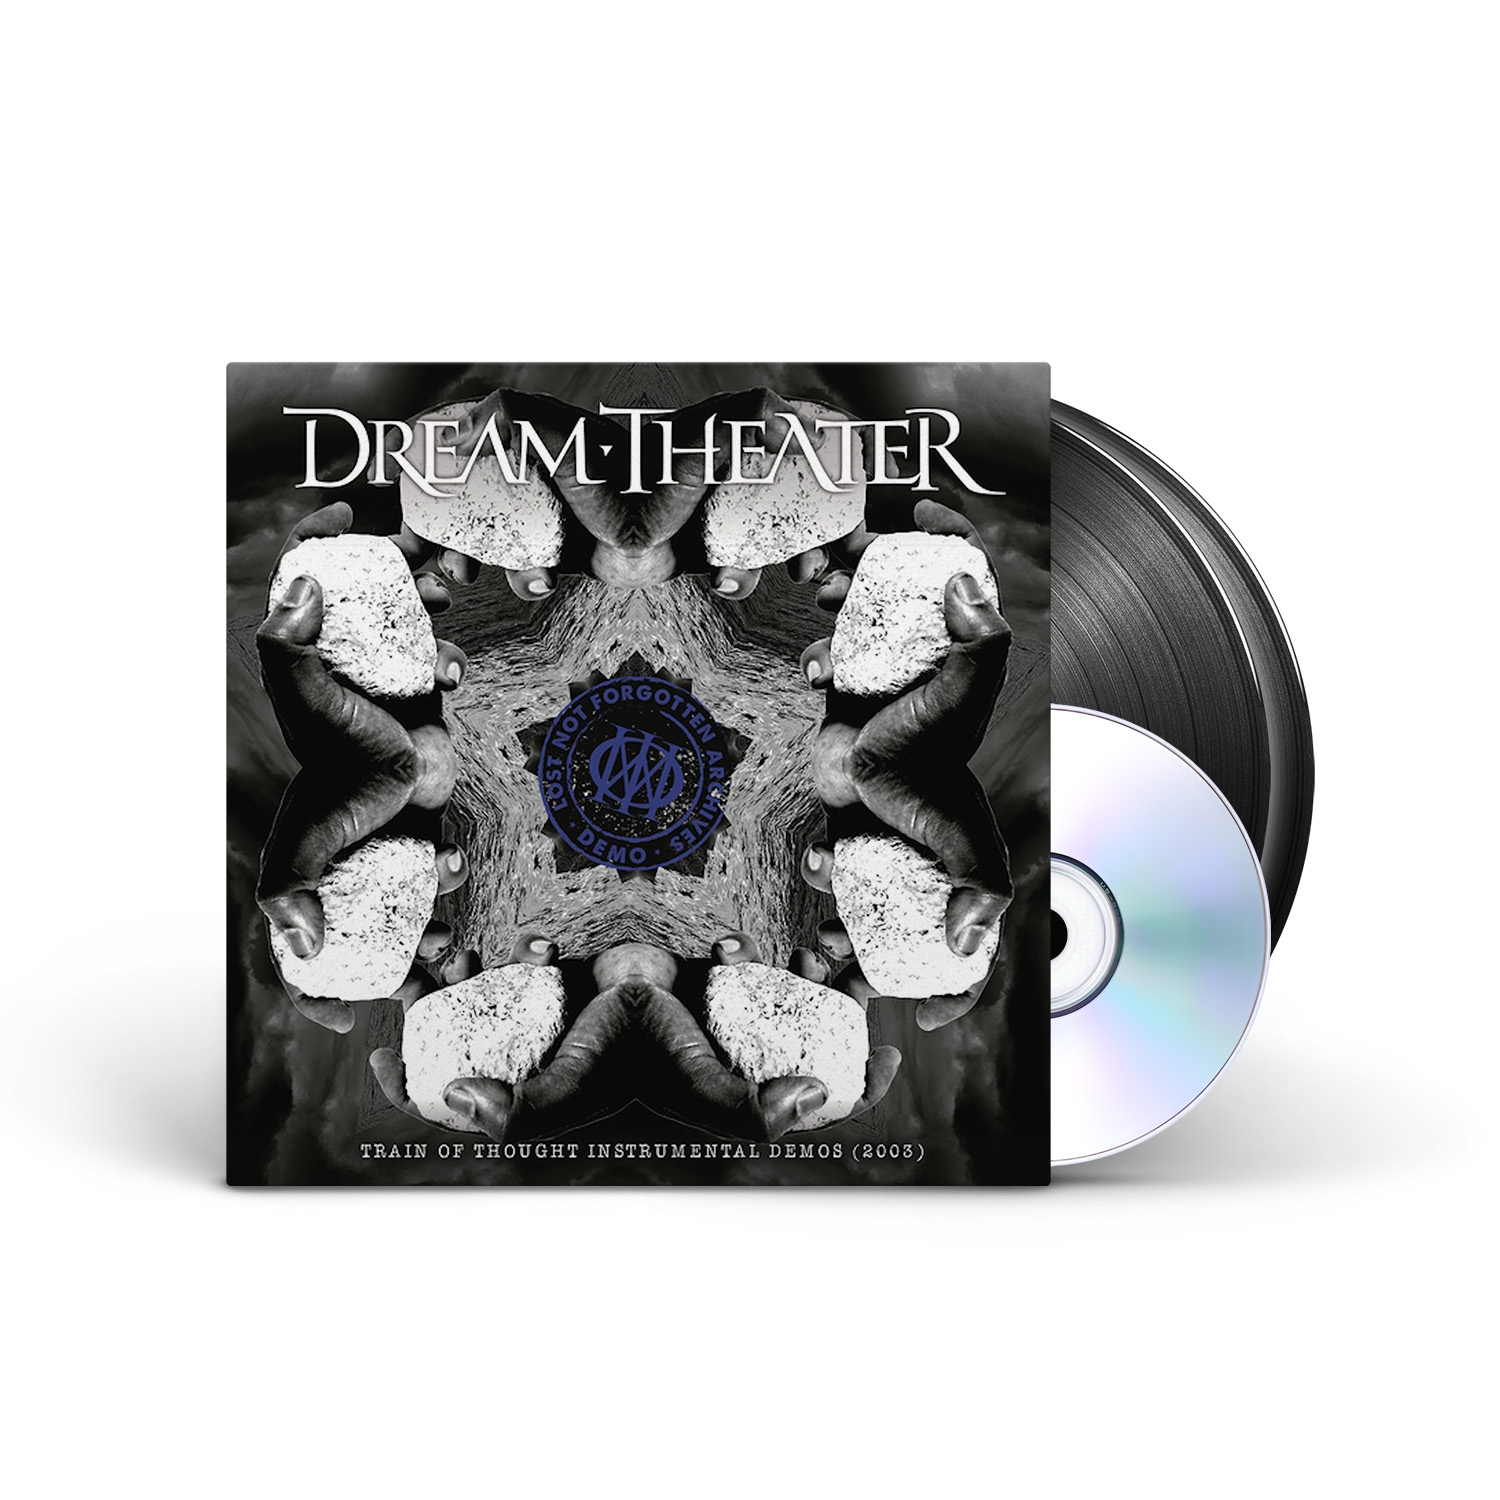 Dream Theater - Lost Not Forgotten Archives: Train of Thought Instrumental Demos (2003) Black 2LP + CD + Digital Download